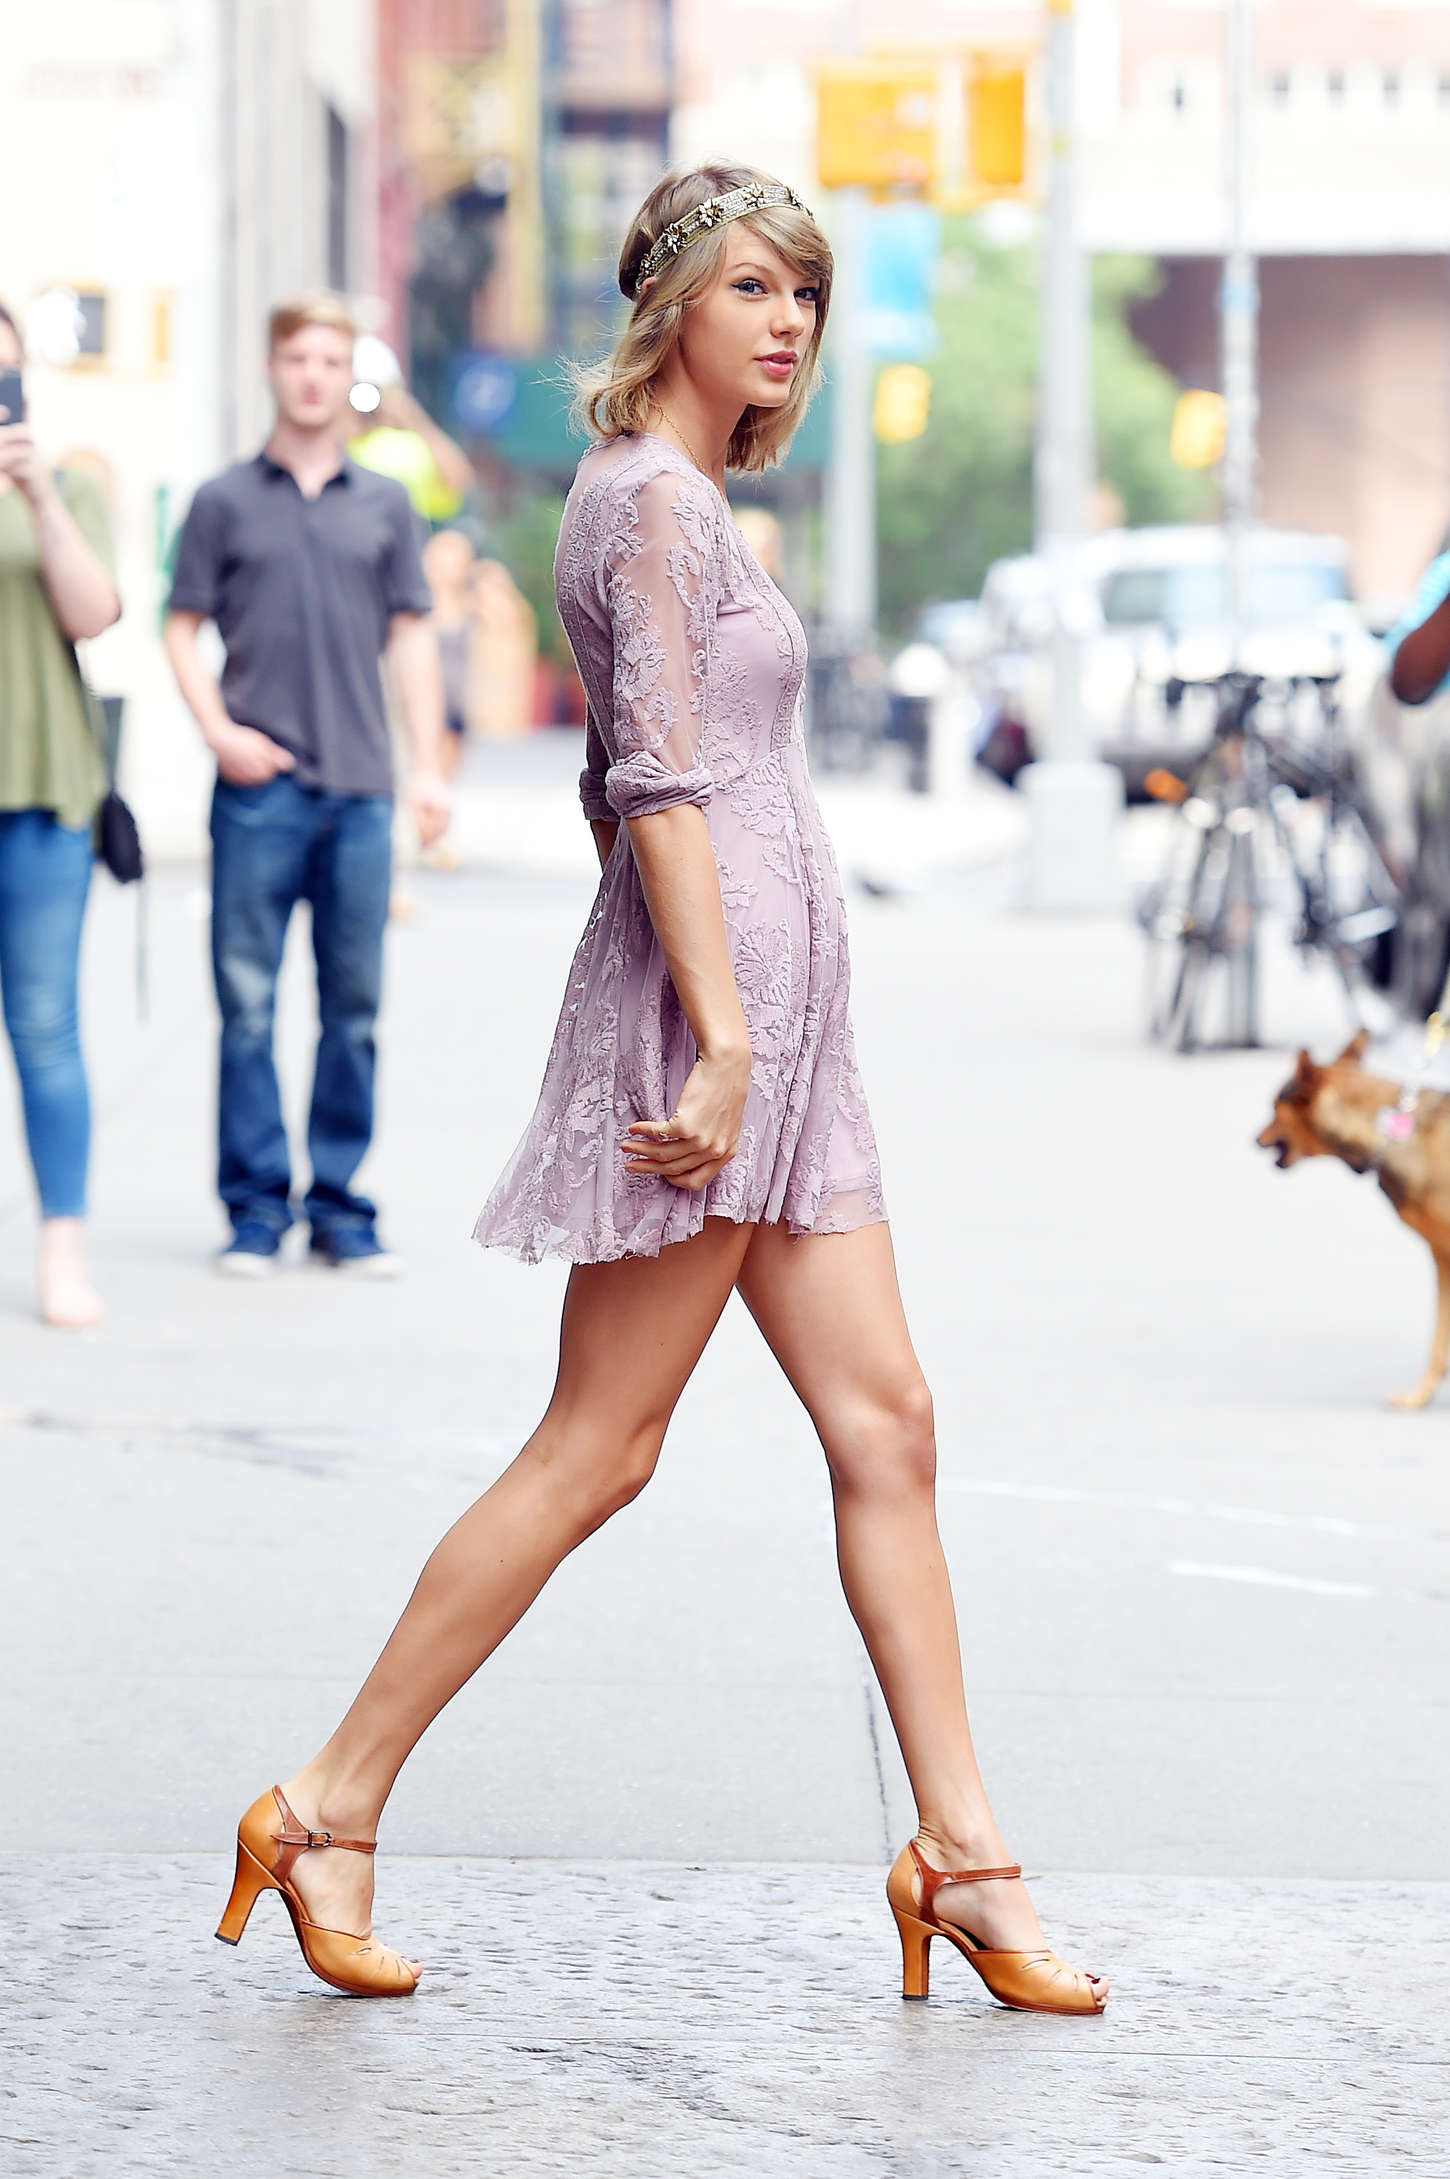 Taylor Swift in Mini Dress -18 - GotCeleb